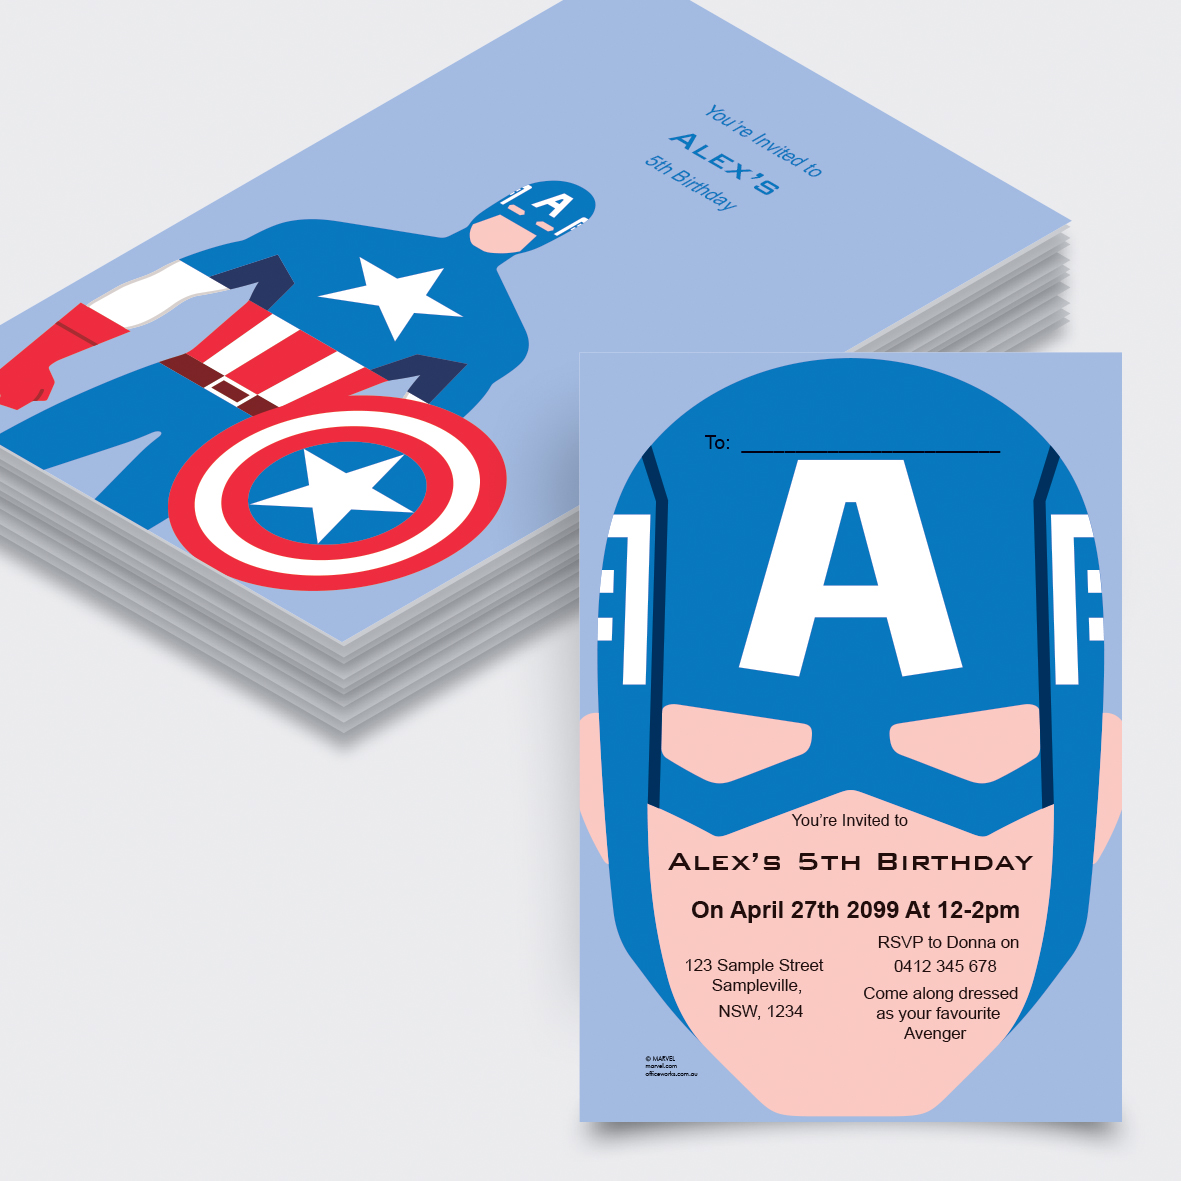 Print Copy Officeworks Color Circuit Board Electronic Template Large Business Cards Pack Of Avengers Captain America